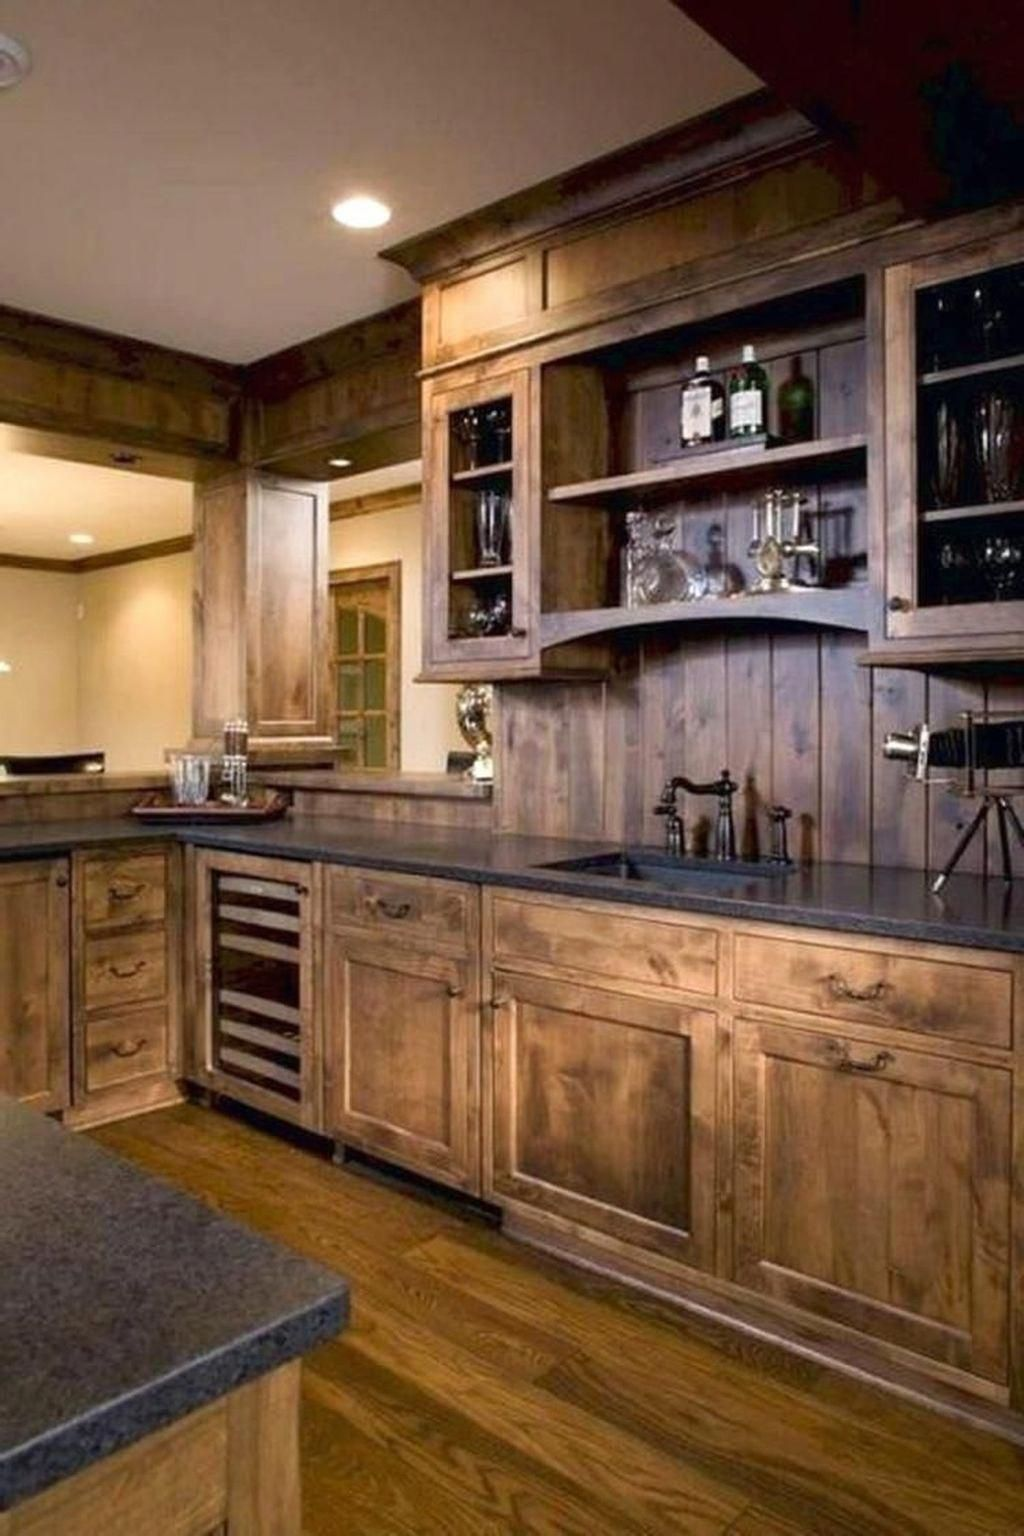 31 Fabulous Modern Rustic Kitchen Cabinets In 2020 Rustic Modern Kitchen Rustic Kitchen Cabinets Kitchen Style